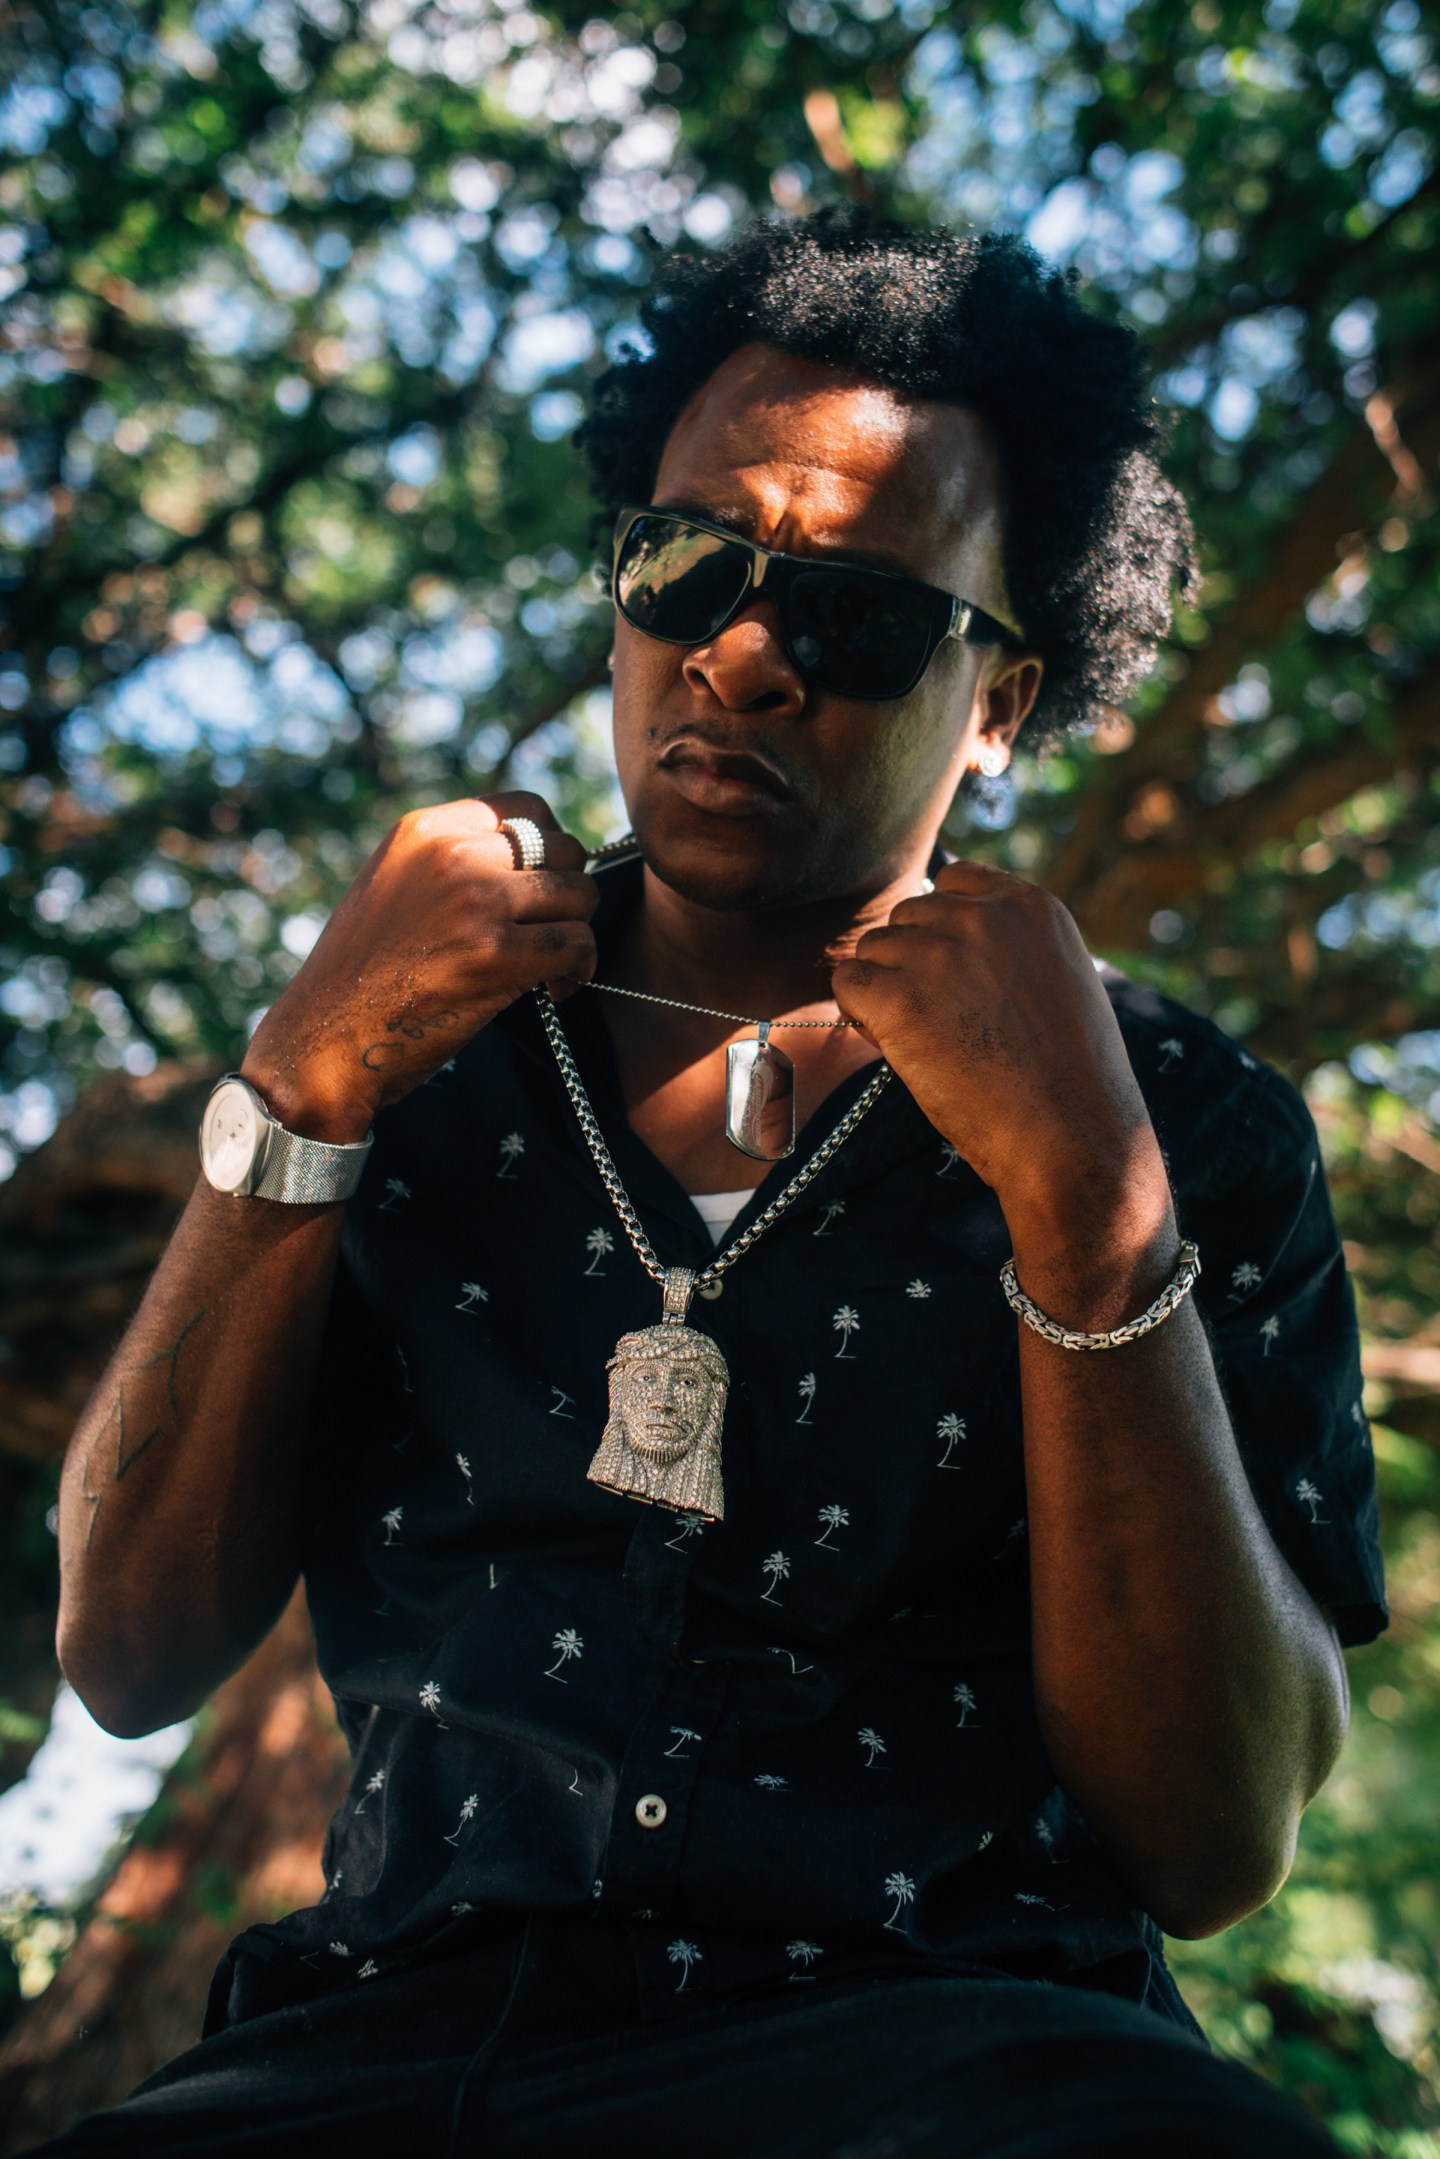 Meet Charly Black, The Dancehall Artist Who'll Make You Fall In Love In The Club